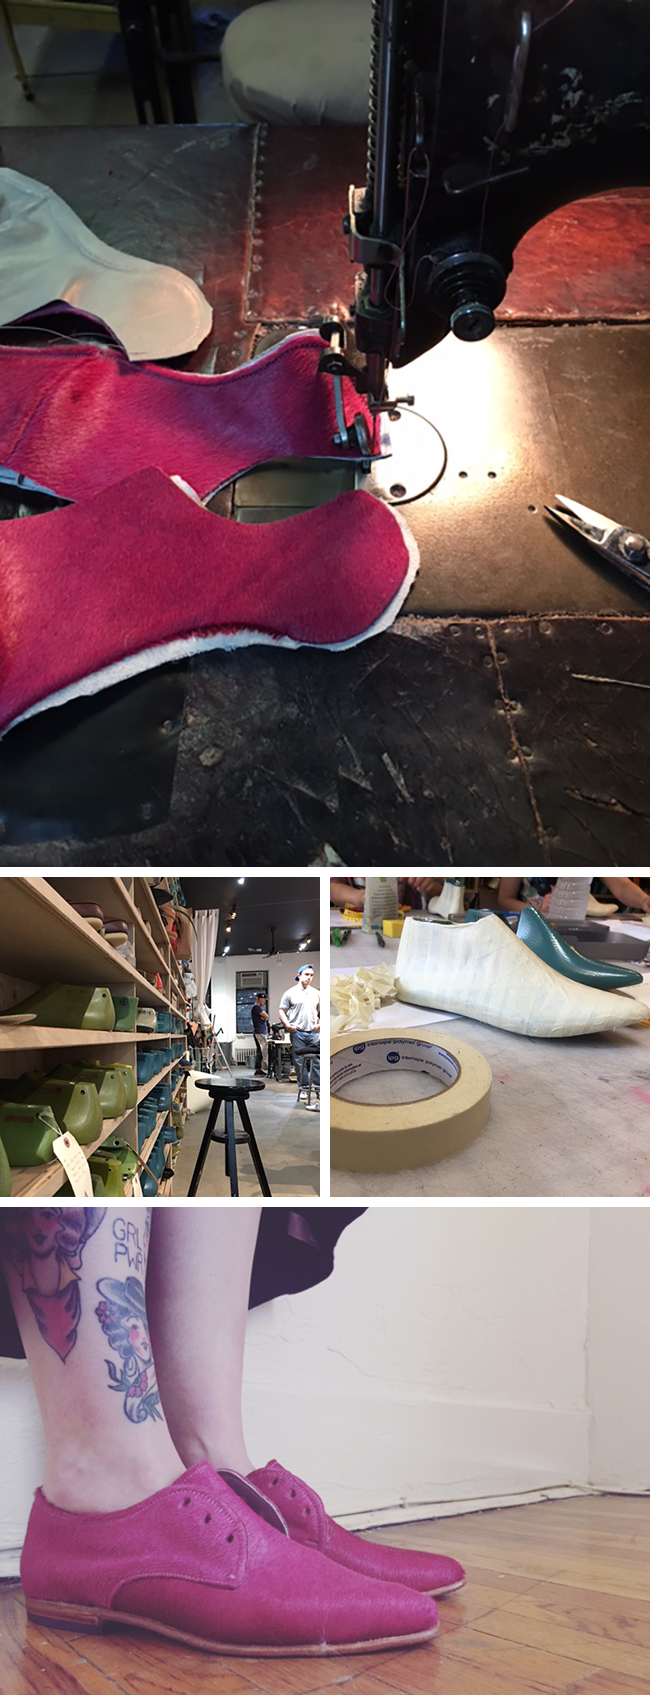 Walking a mile in self-made shoes